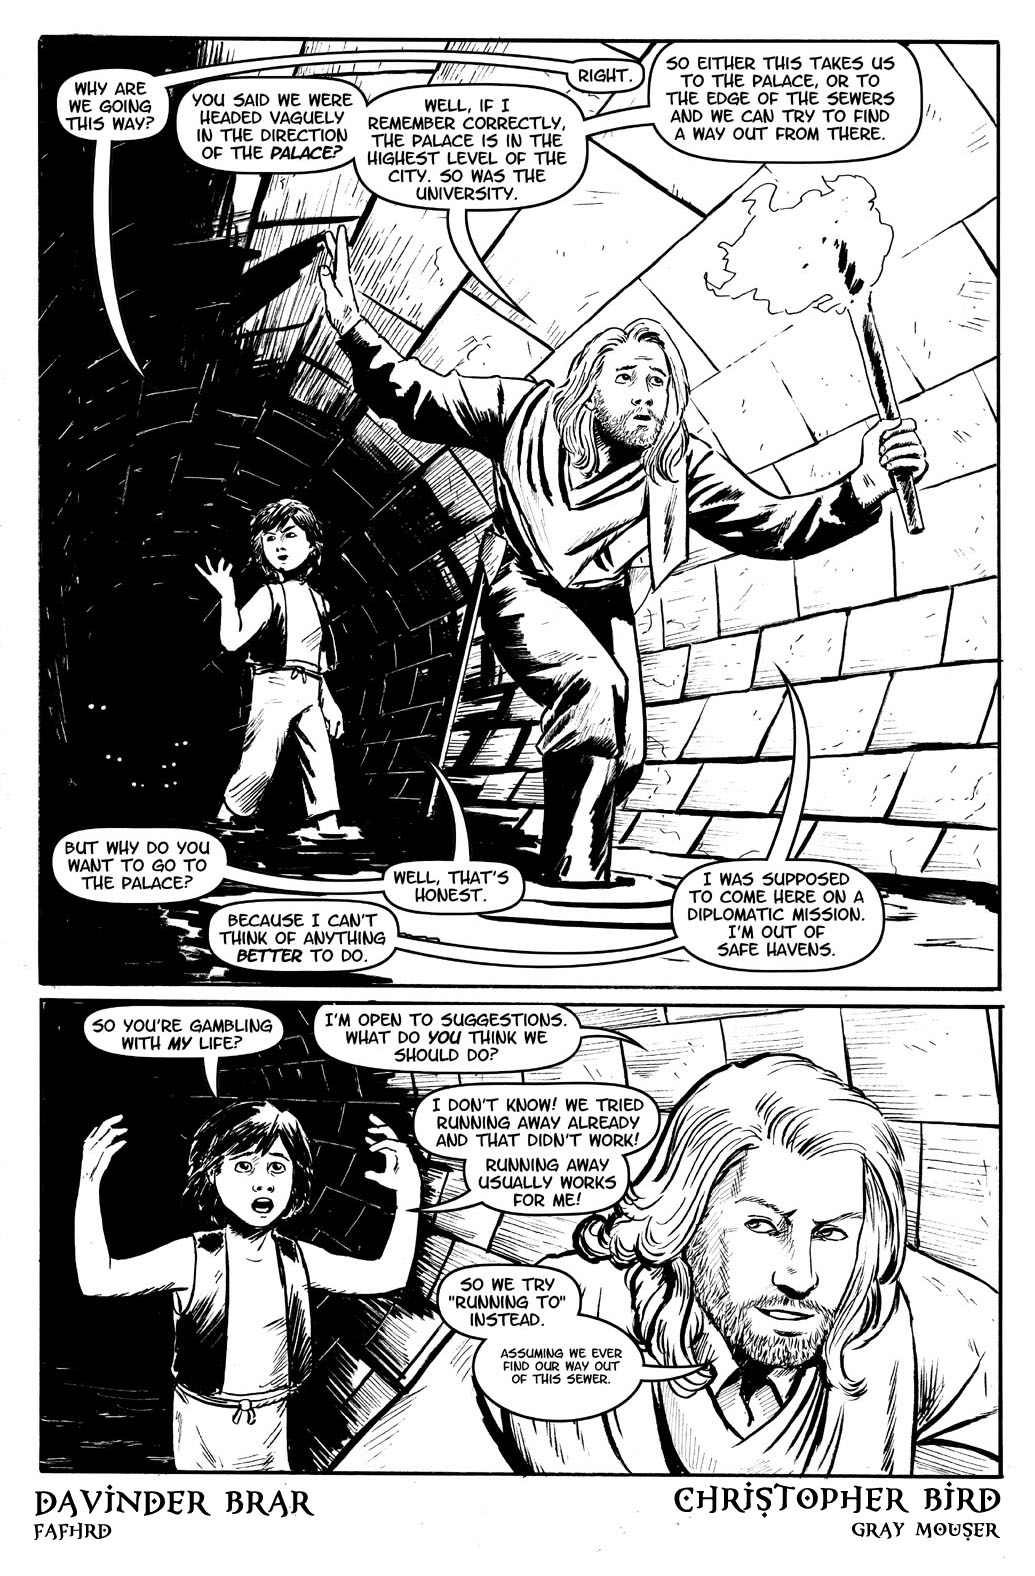 Book 4, page 15